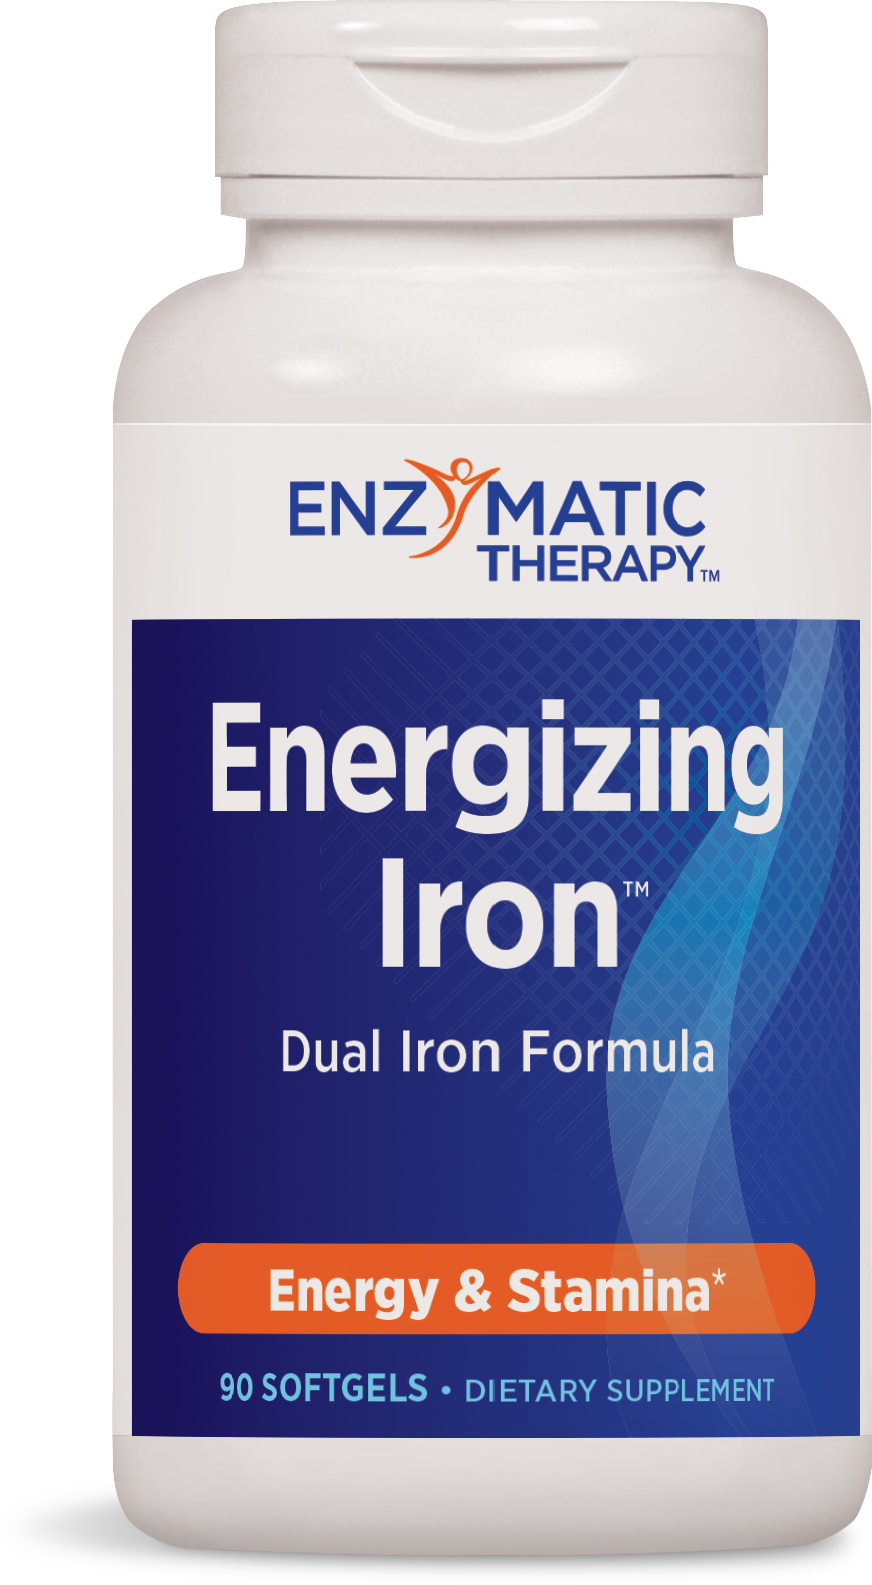 Energizing Iron 90 sgels by Enzymatic Therapy